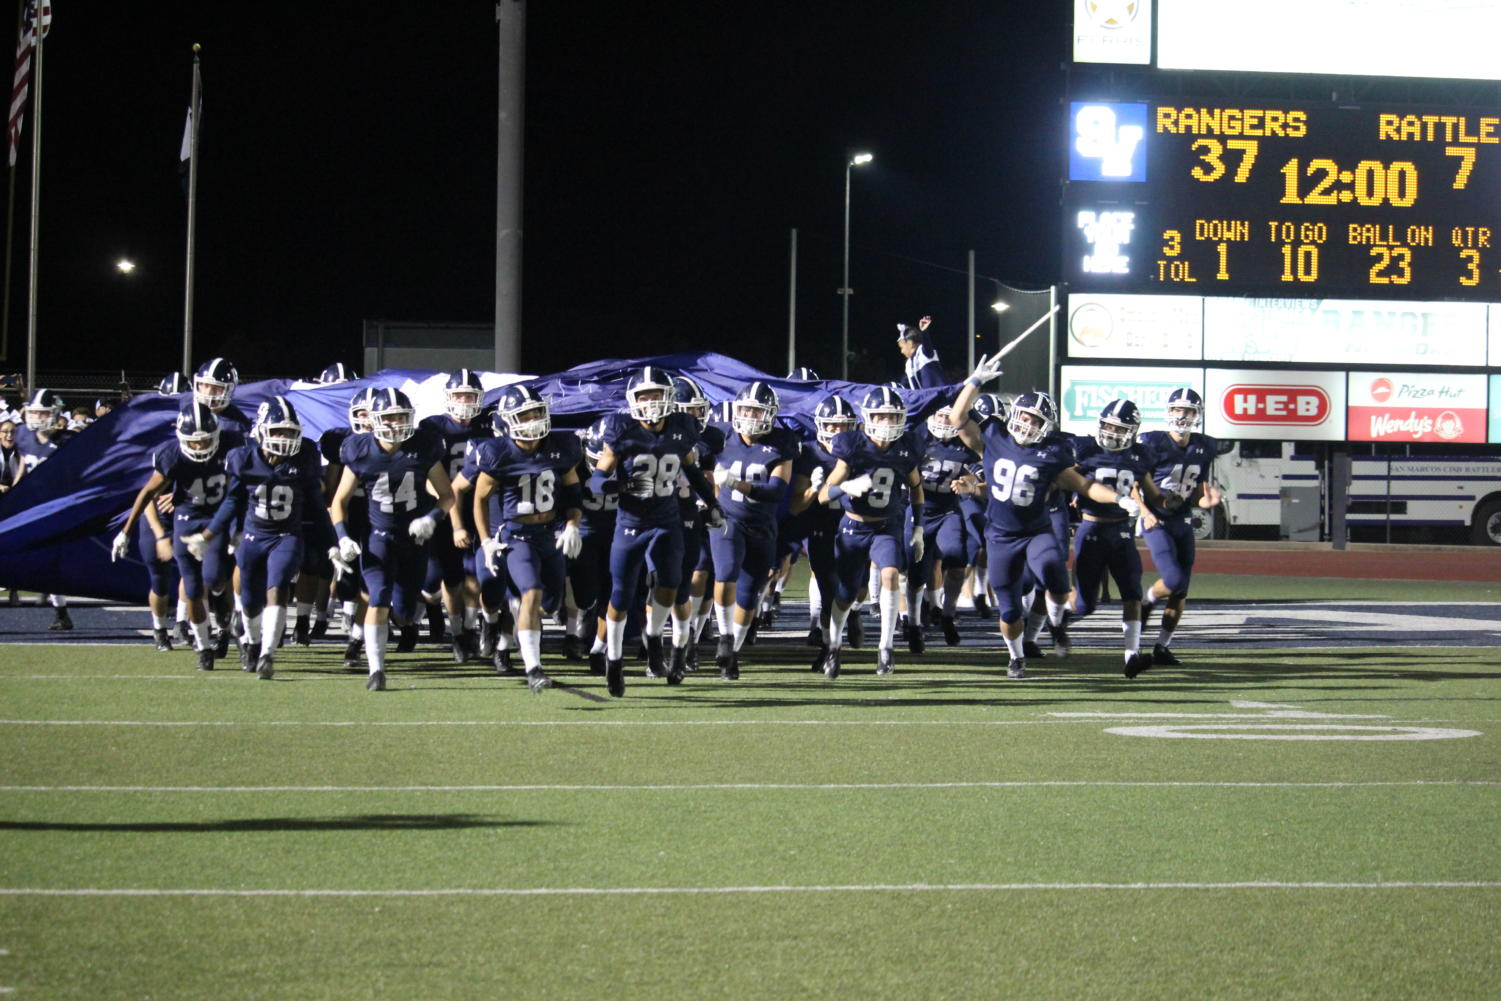 Football defeated New Braunfels, 20-3 to clinch a playoff birth where they will play powerhouse Lake Travis on November 16th at 7:30 p.m. in Austin.